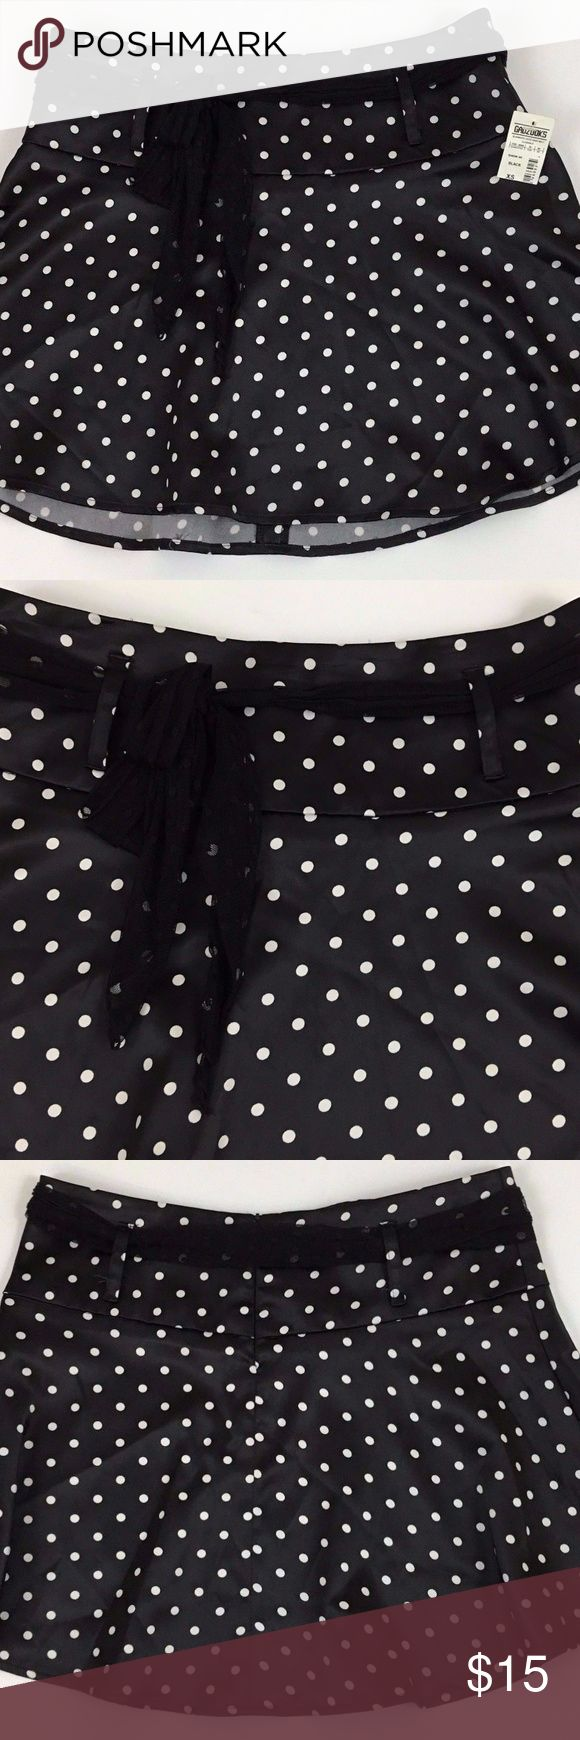 Taunt Black and White Polka Dot Mini Skirt Taunt Women's SEXY Black and White Polka Dot Mini Skirt with Sash Belt Size XS New with Tags  Style: Cute Black and White Women's Miniskirt by Taunt (Made in the USA)  Color: Black and White   Size: XS  Measurements: Waist Flat 15 Inches, Hip Inseam 14.75 Inches, Overall Length 15.5 Inches, Zipper length 6 inches   WTA-120 Taunt Skirts Mini